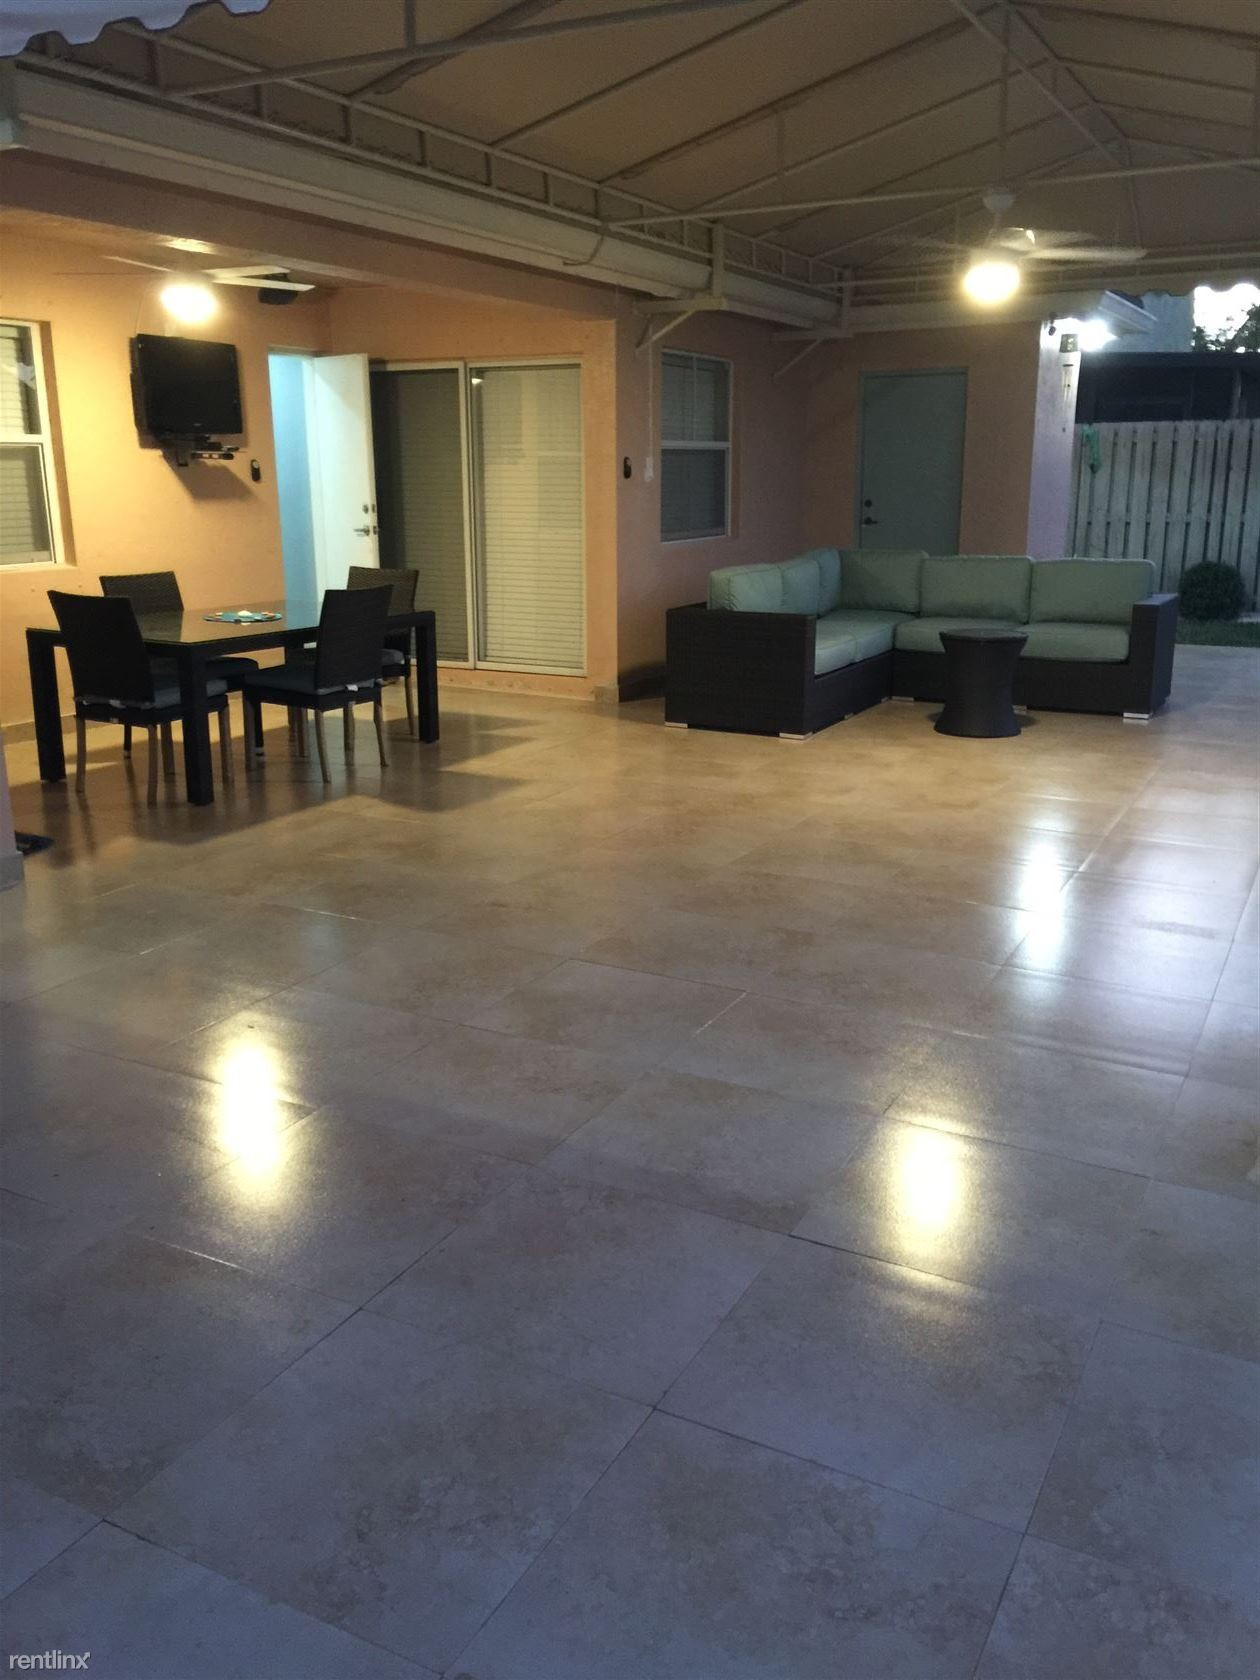 11415 sw 247th terrace homestead fl 33032 4 bedroom 2 bedroom apartments in homestead fl